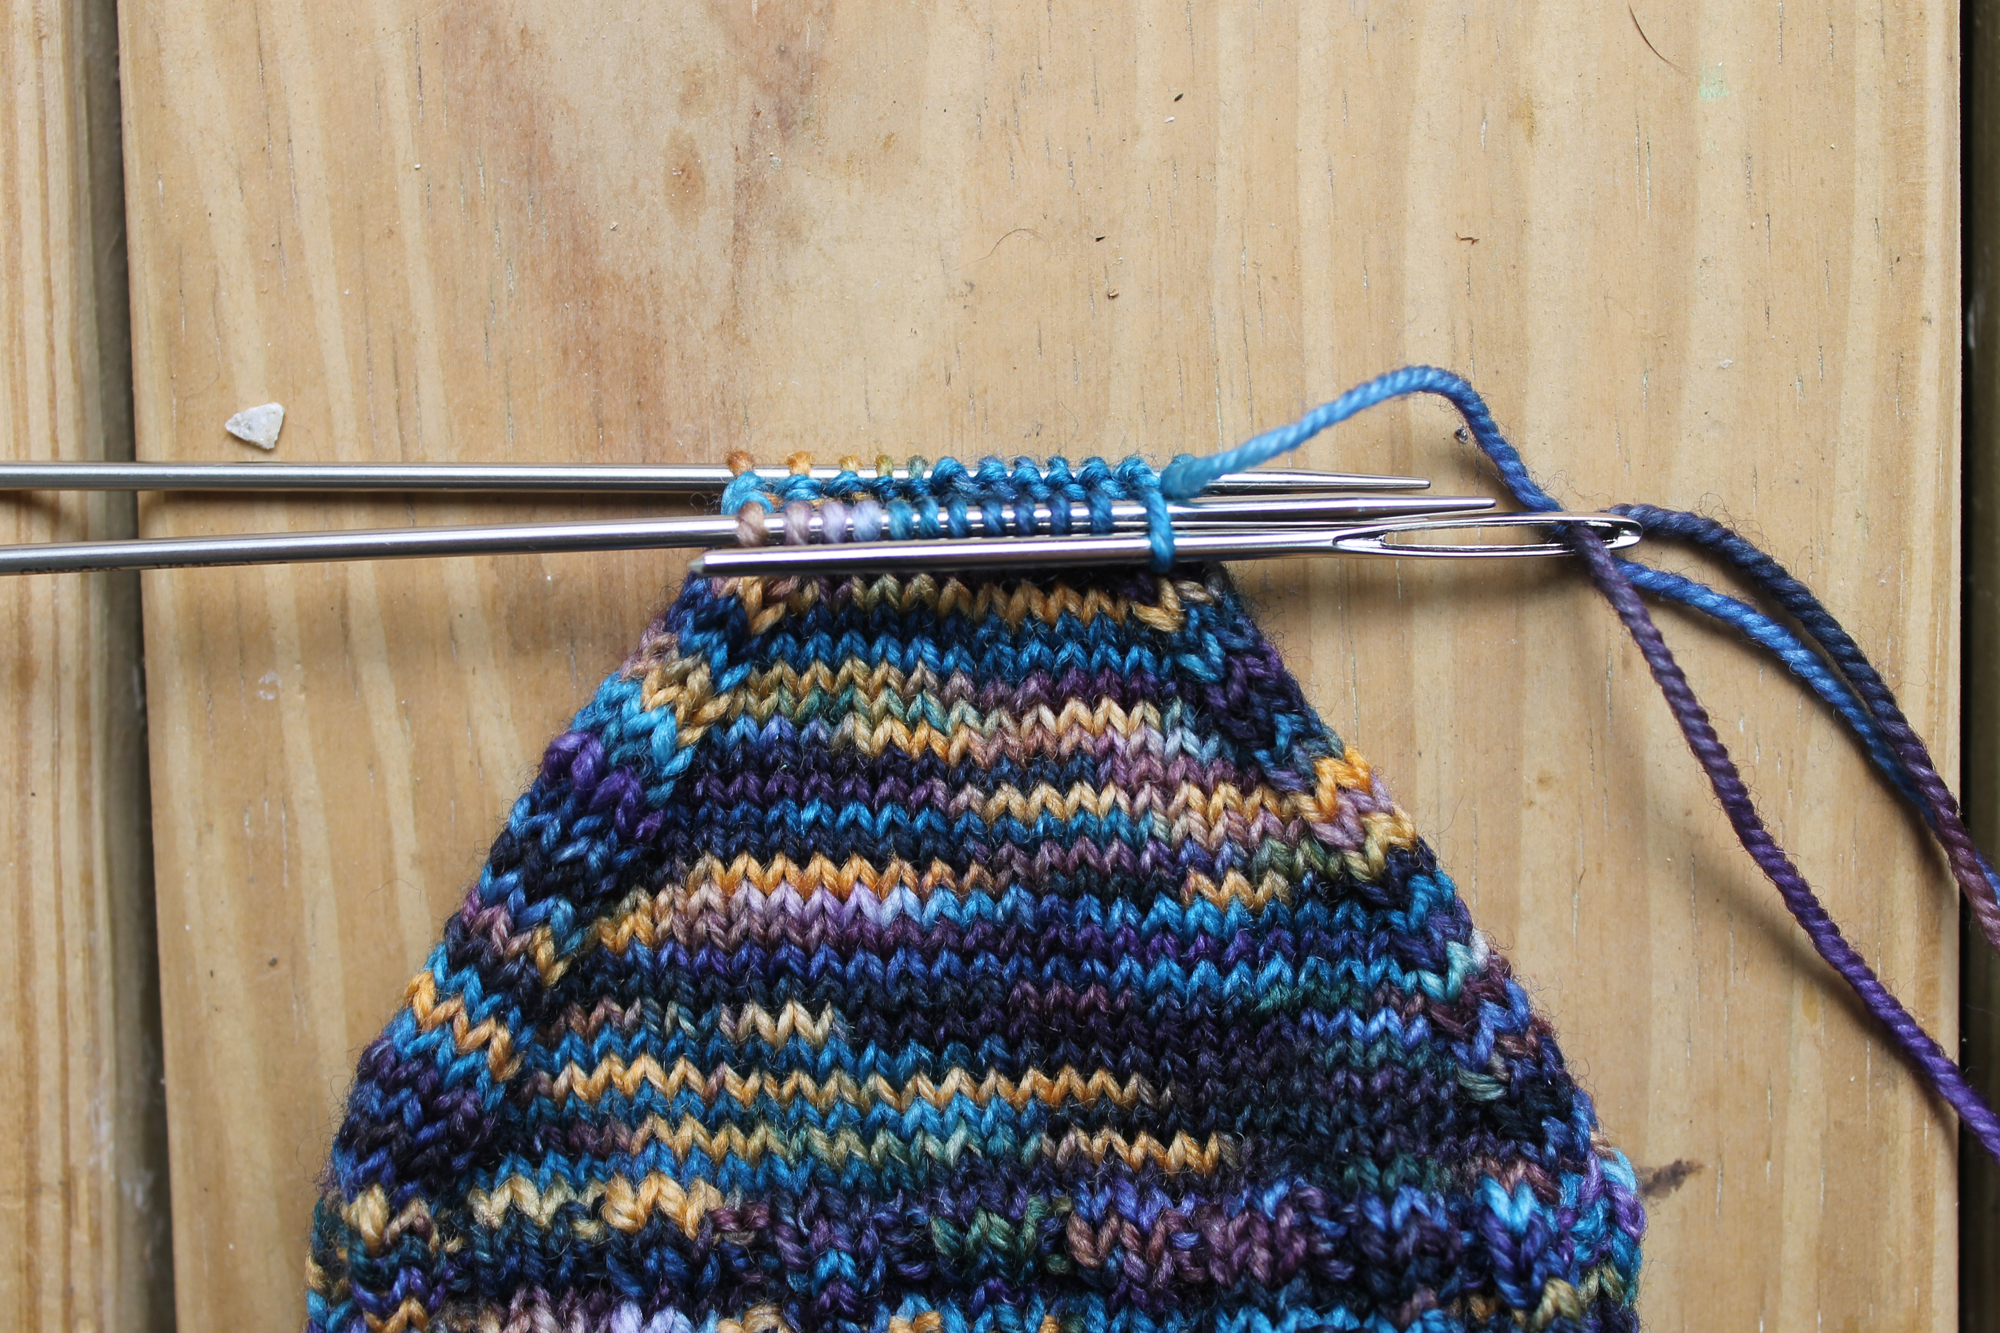 Inserting purlwise into the first stitch